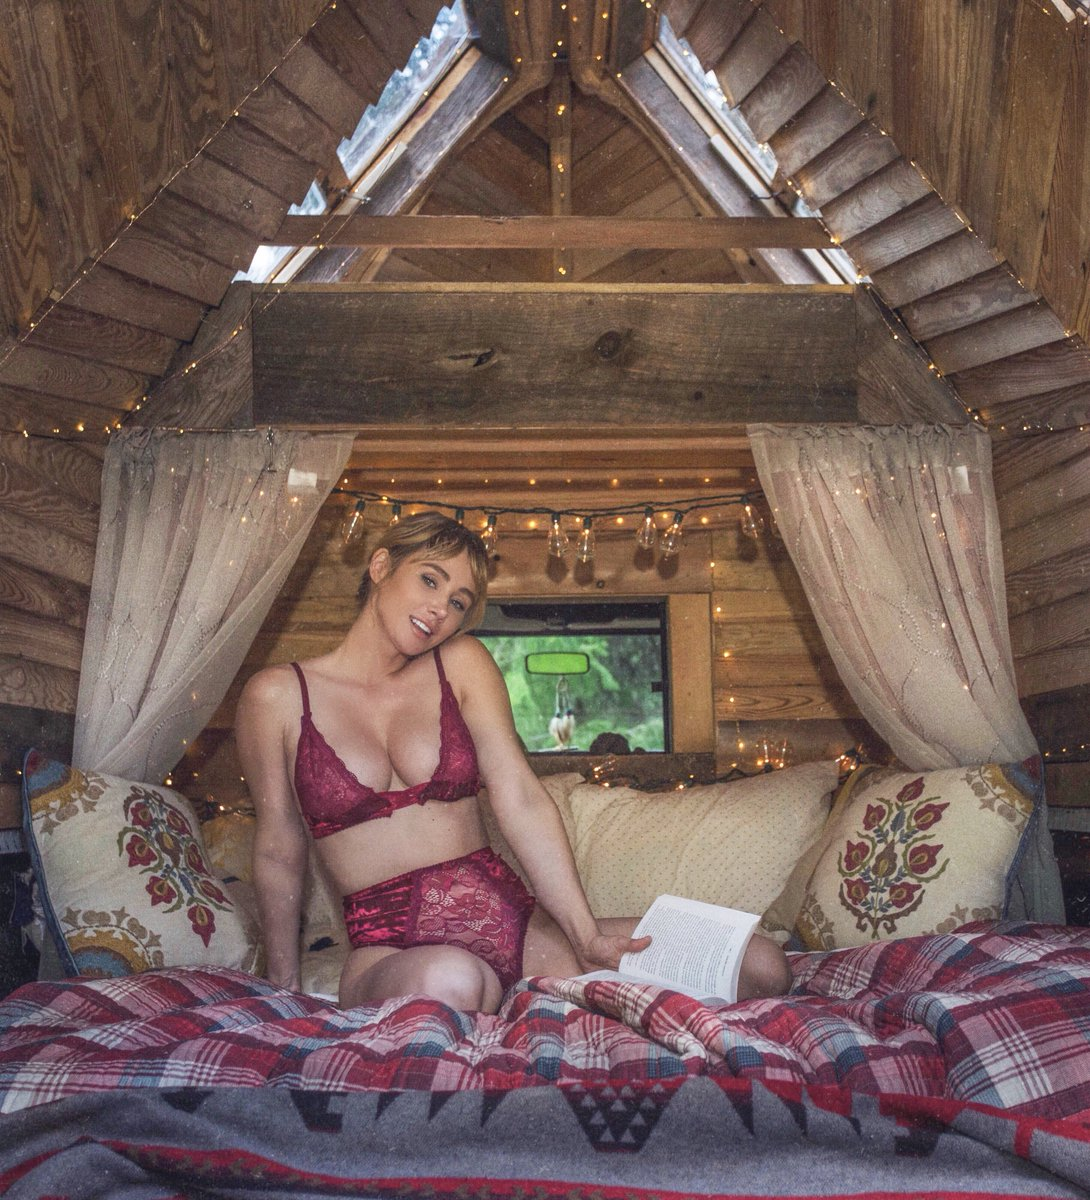 A bed and a book is all I need